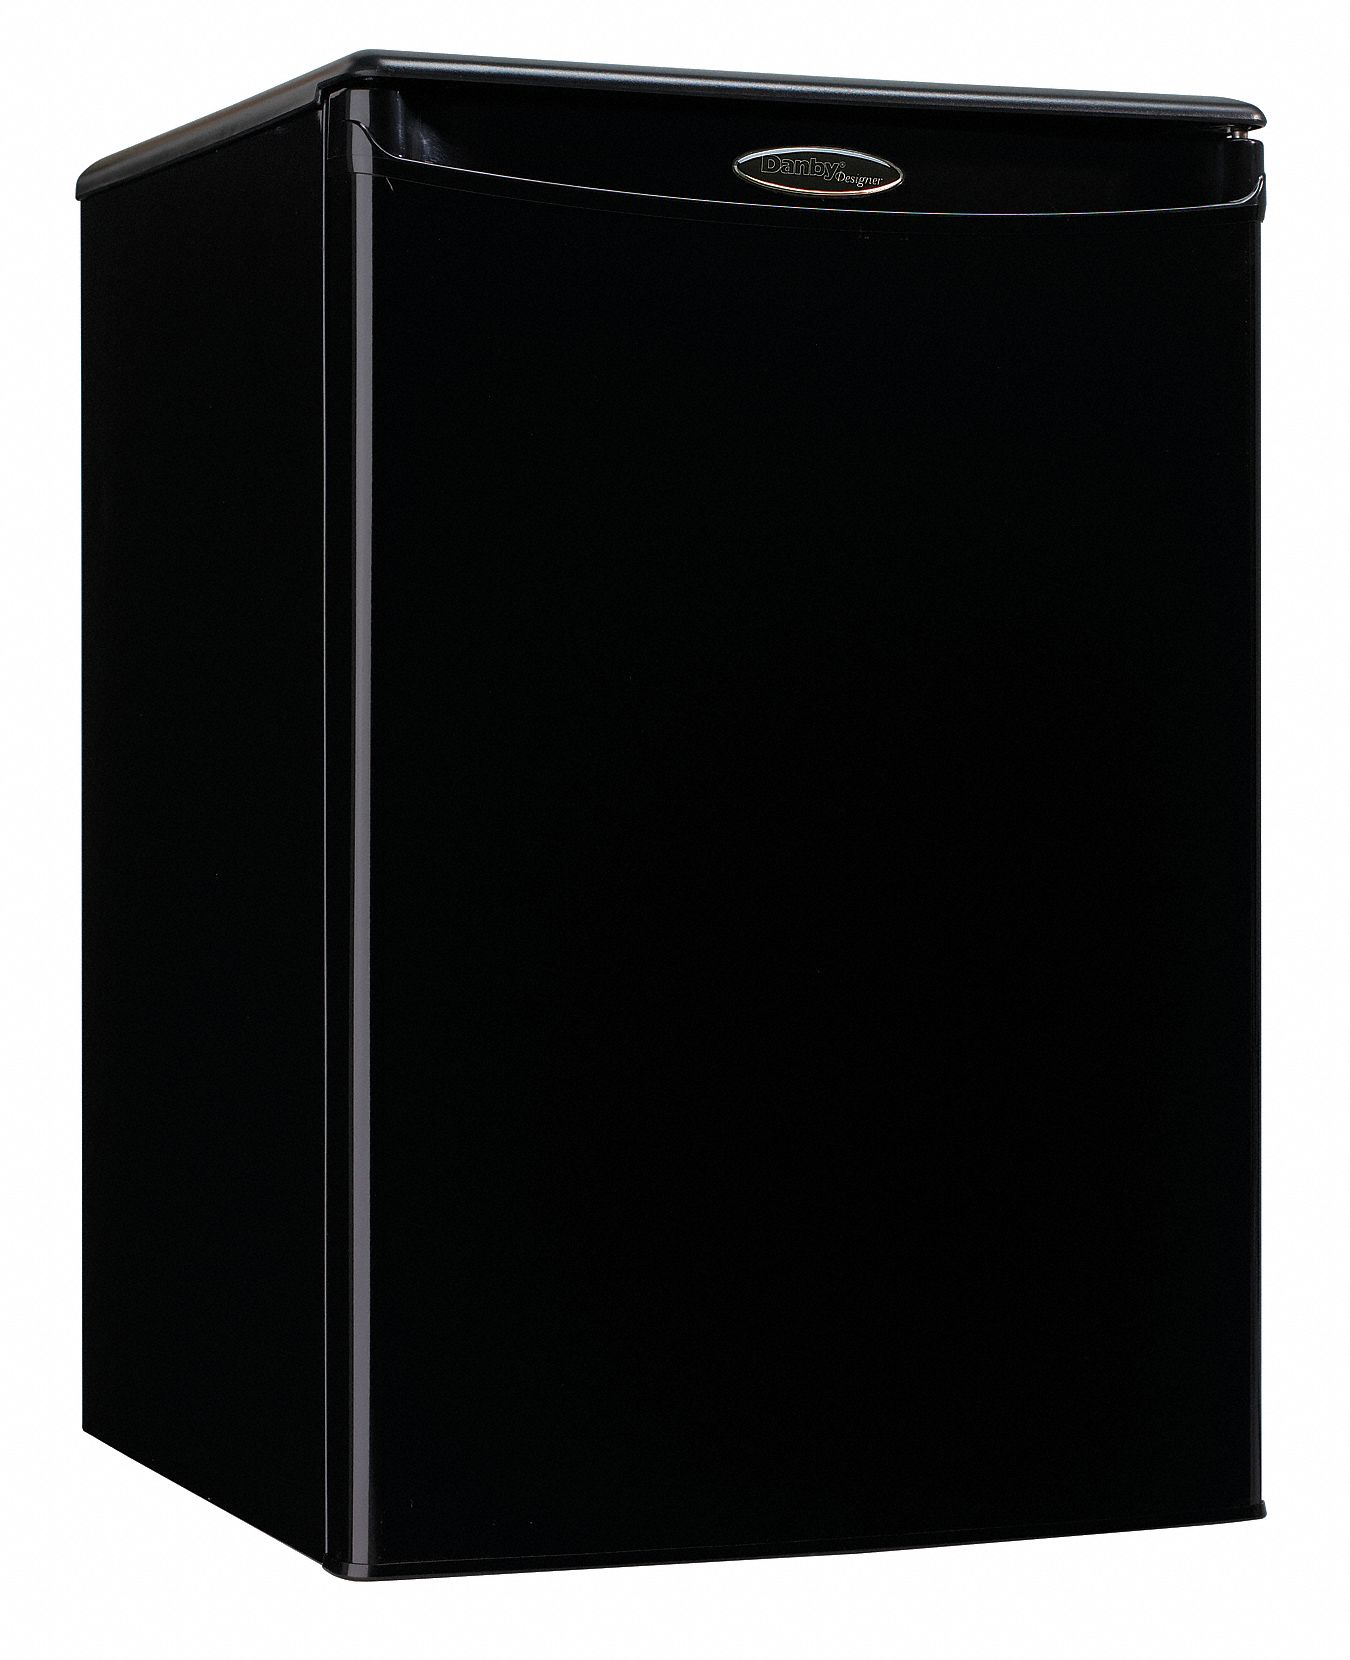 Refrigerator, Residential, Black, 17 5/8 in Overall Width, 2.6 cu ft Refrigerator Capacity